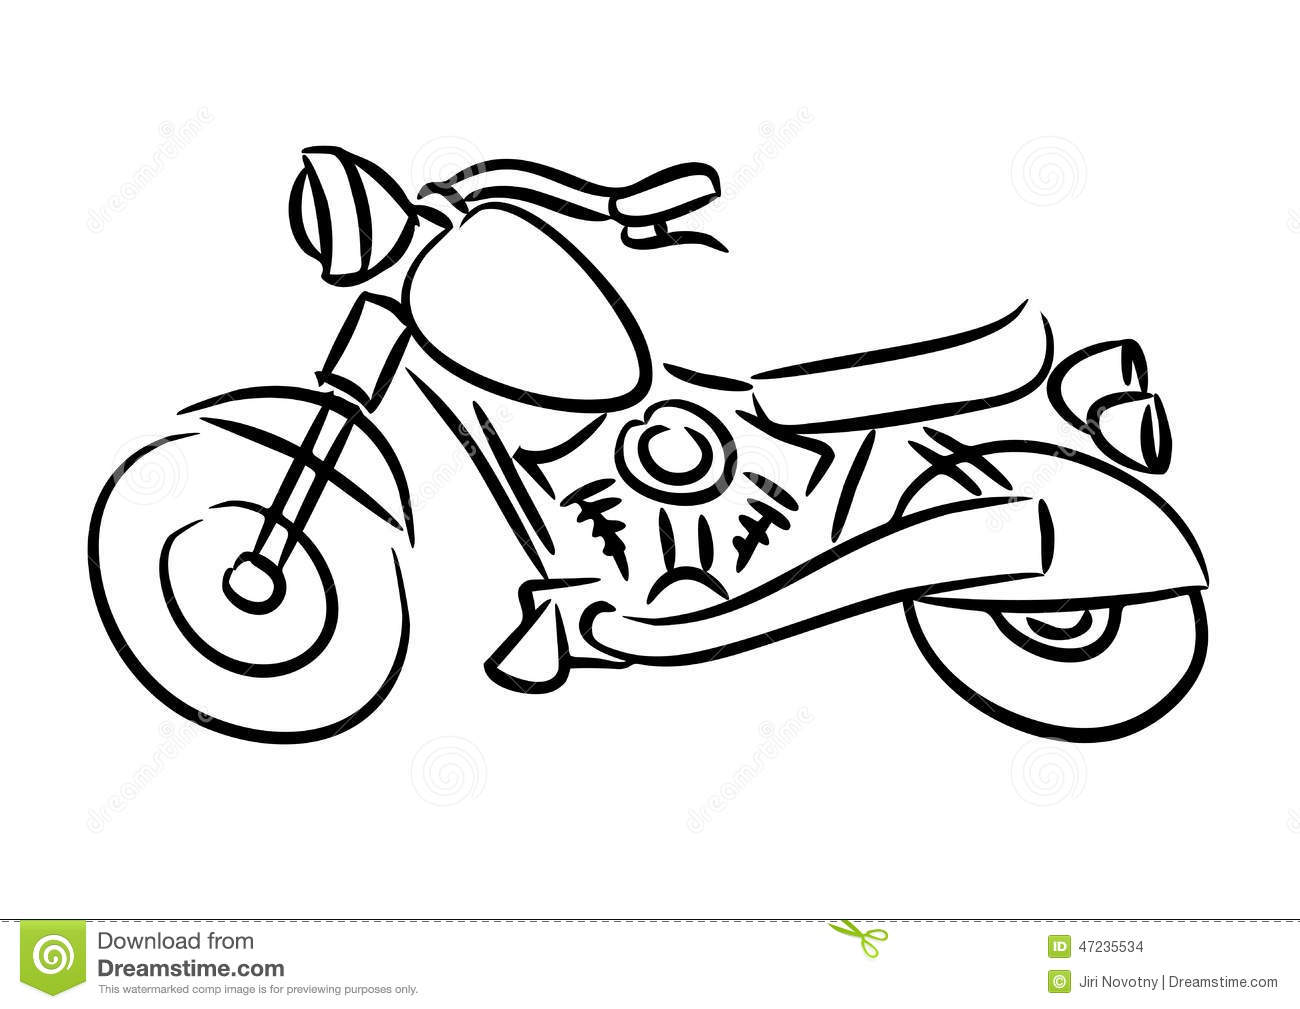 How To Draw Simple Motorcycle